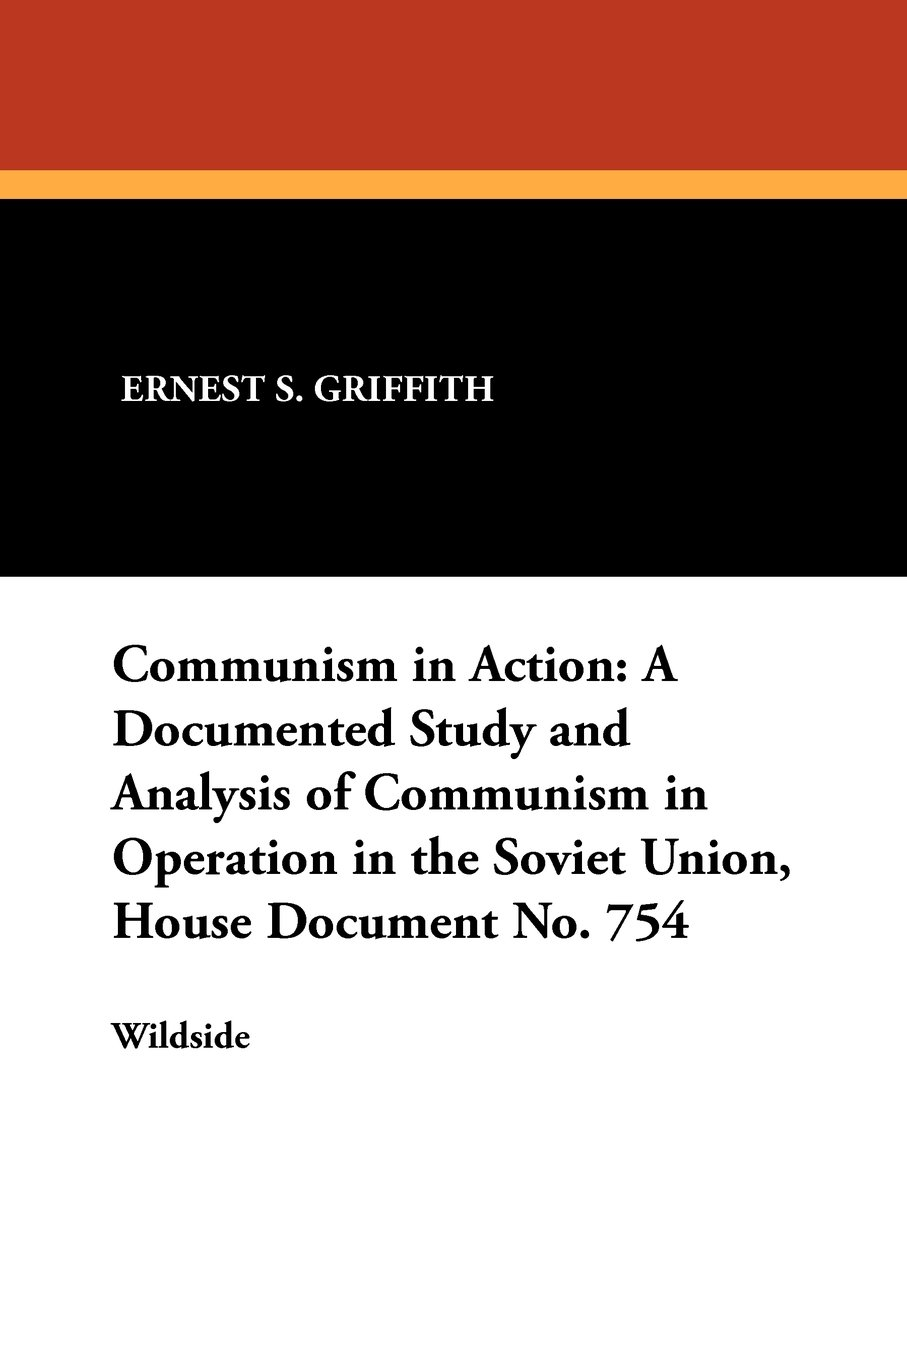 Download Communism in Action: A Documented Study and Analysis of Communism in Operation in the Soviet Union, House Document No. 754 pdf